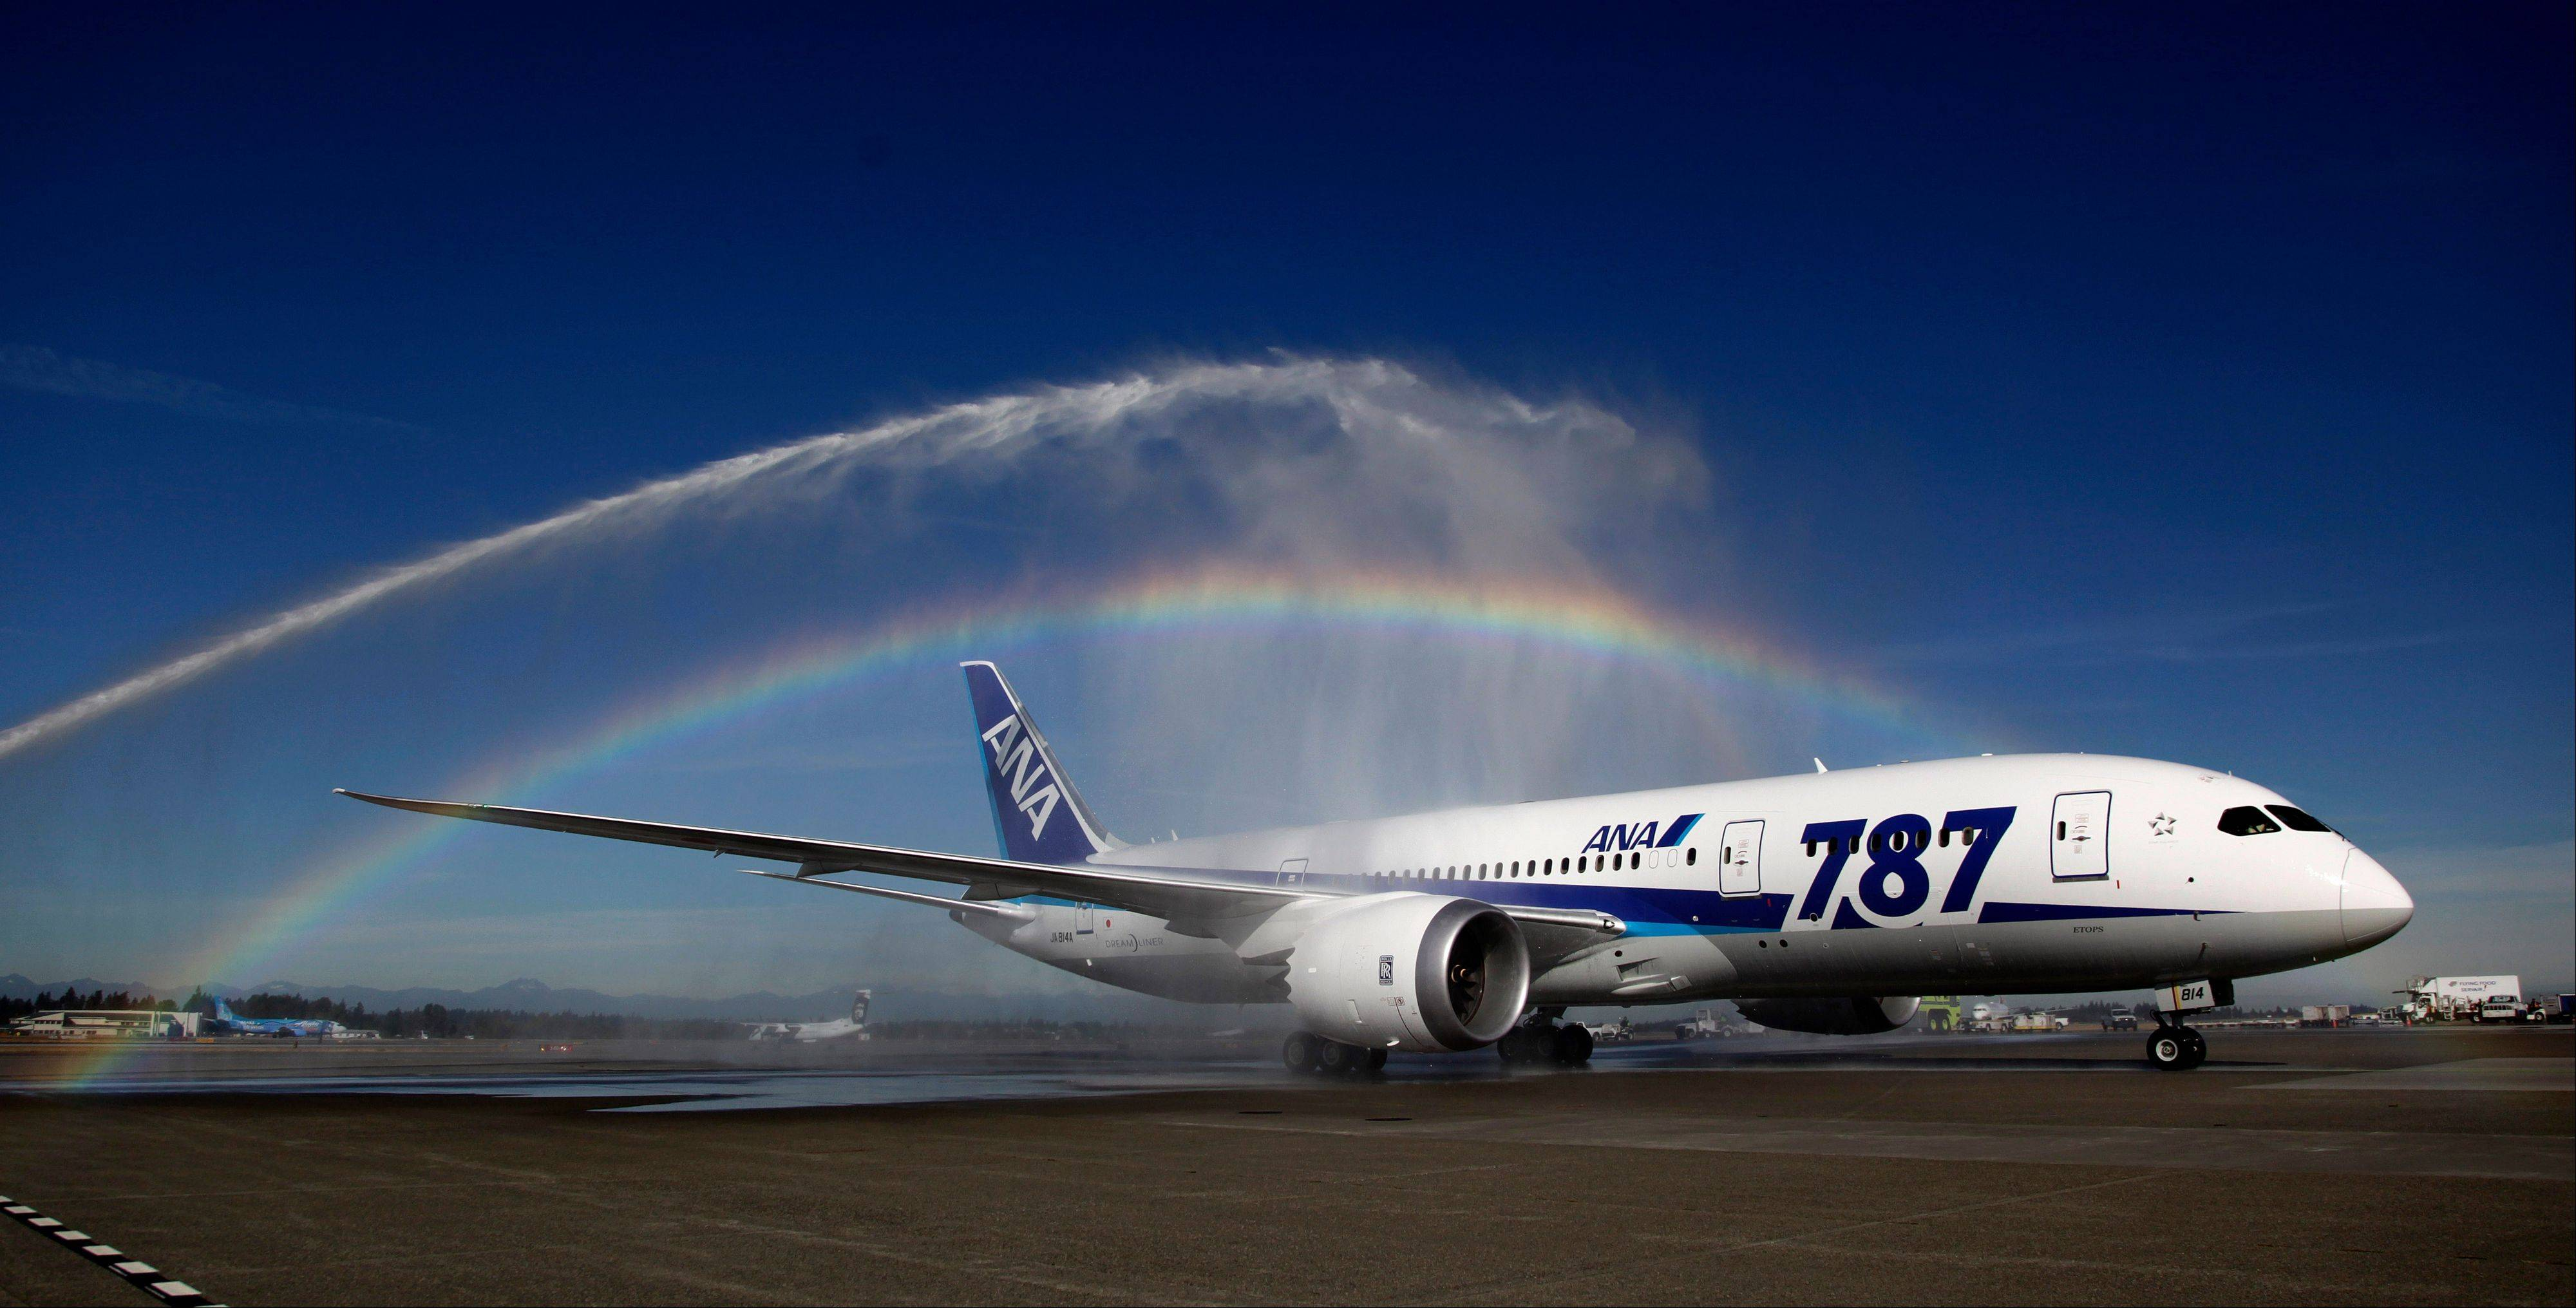 Boeing's commercial airplanes unit saw operating earnings rise 6 percent to $1.15 billion for the quarter. It delivered 149 planes during the most recent quarter, up from 127 a year ago. Boeing delivered its first 787 last year and has been speeding up deliveries in earnest. It is also speeding production of its profitable 777.